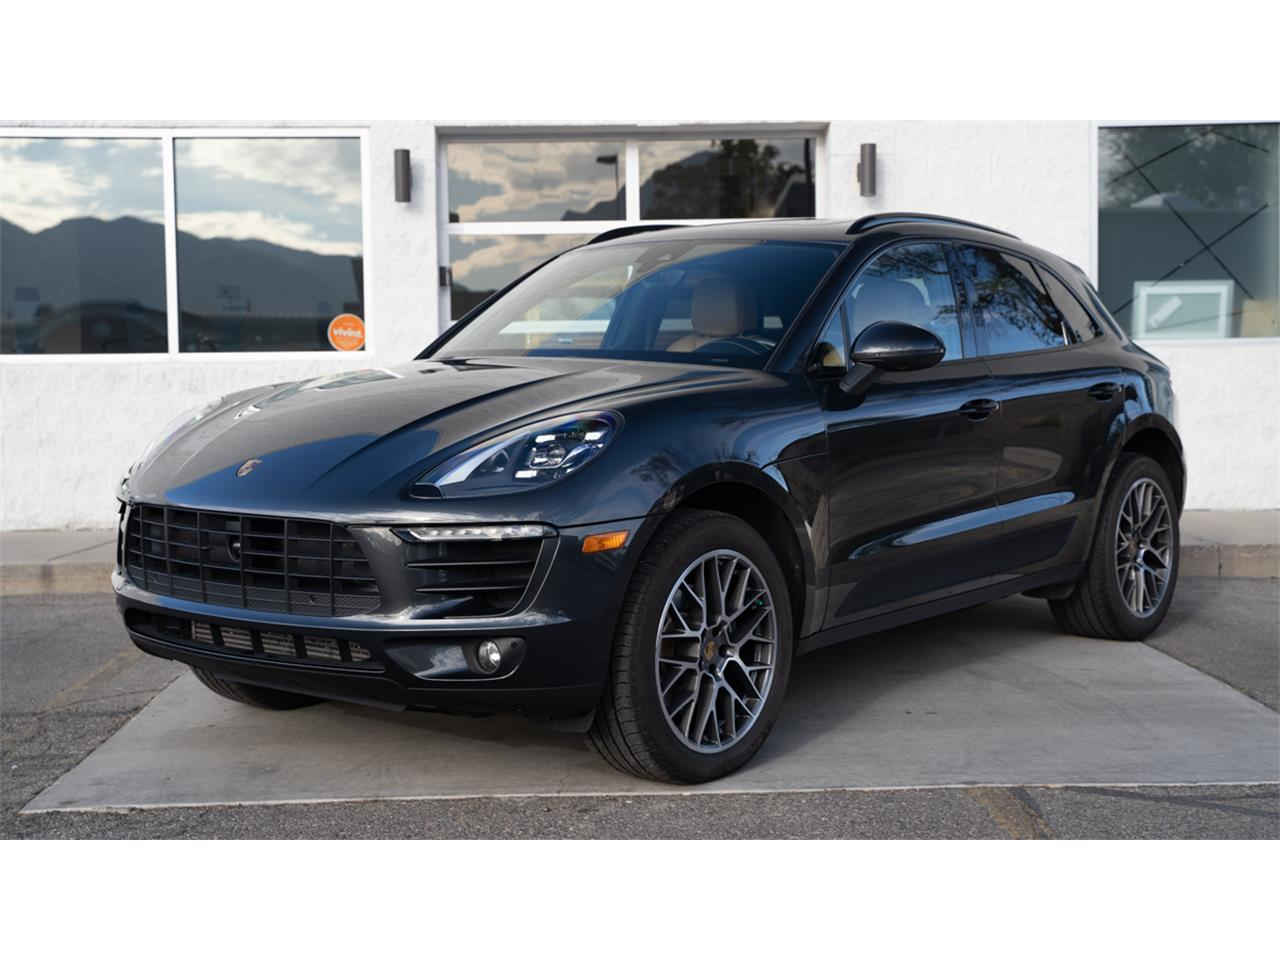 2018 Porsche Macan (CC-1412669) for sale in Salt Lake City, Utah